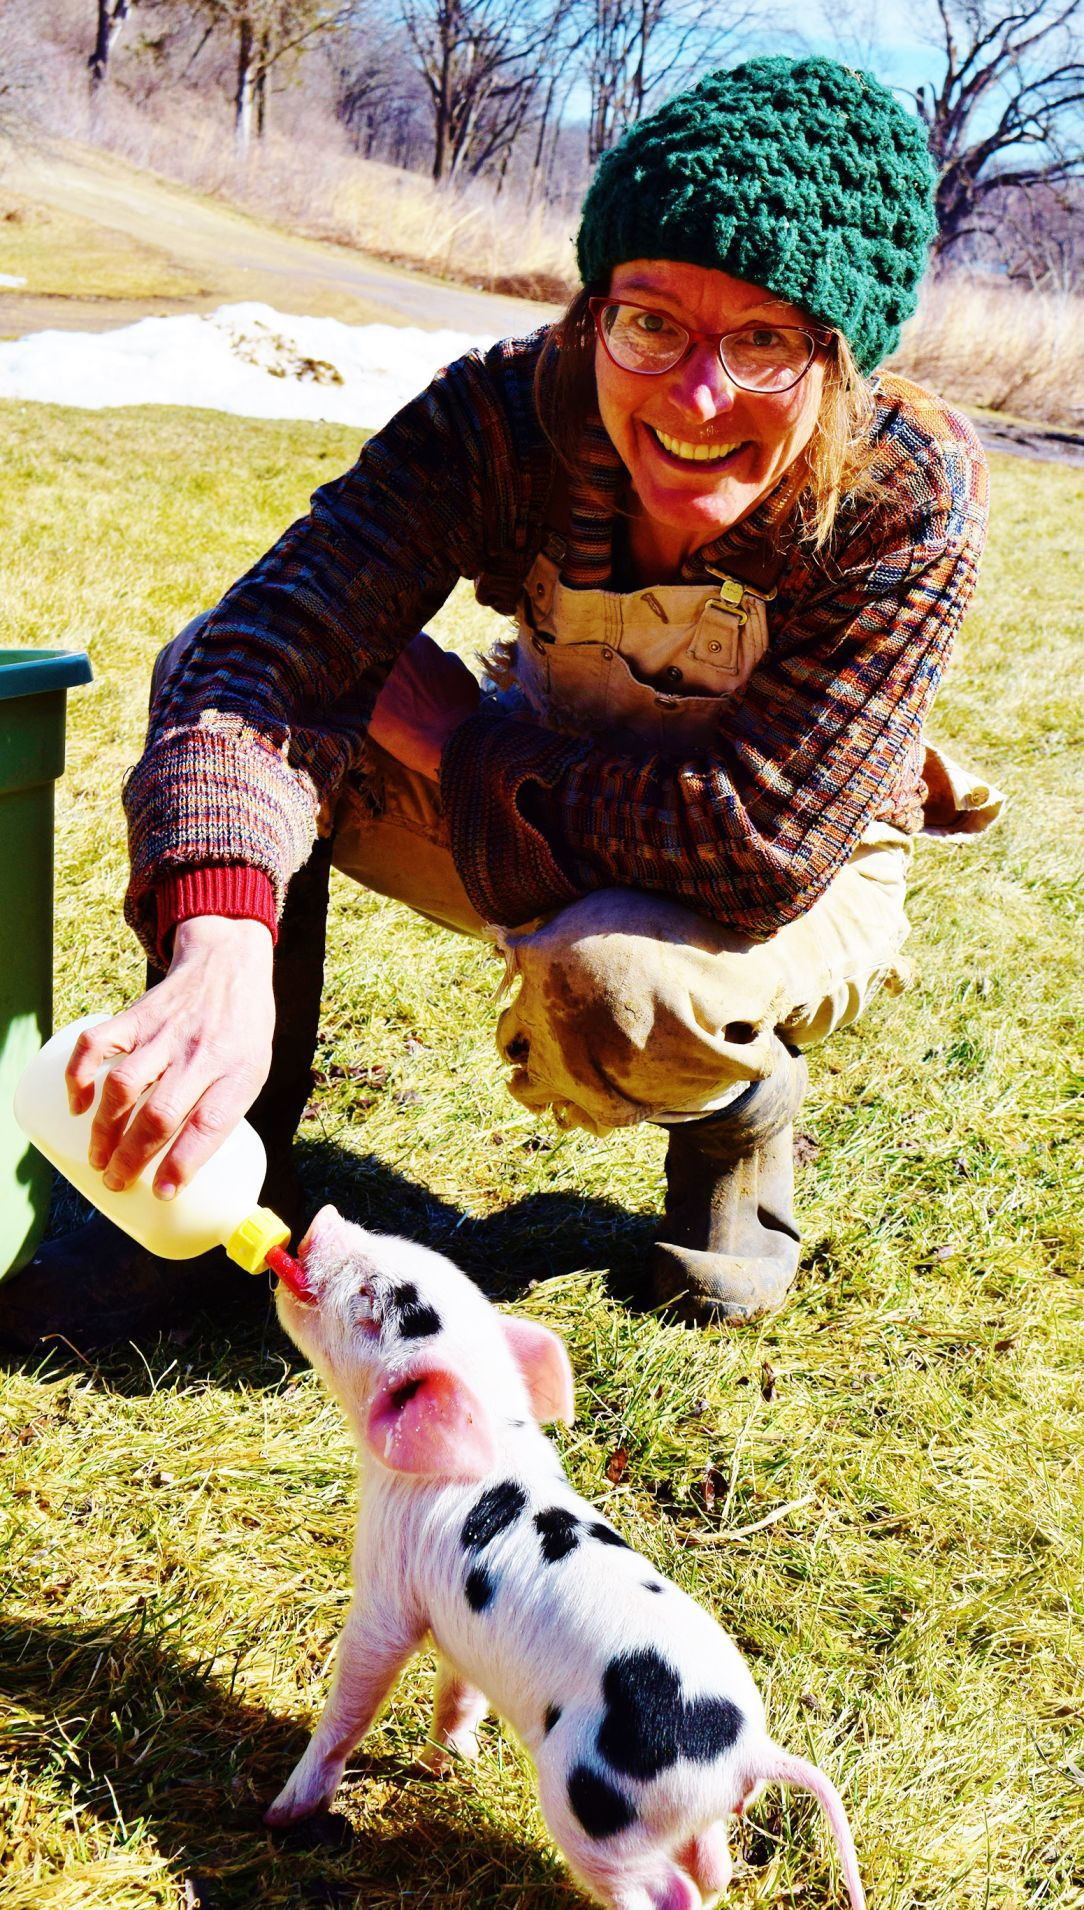 April Prusia with baby spot piglet